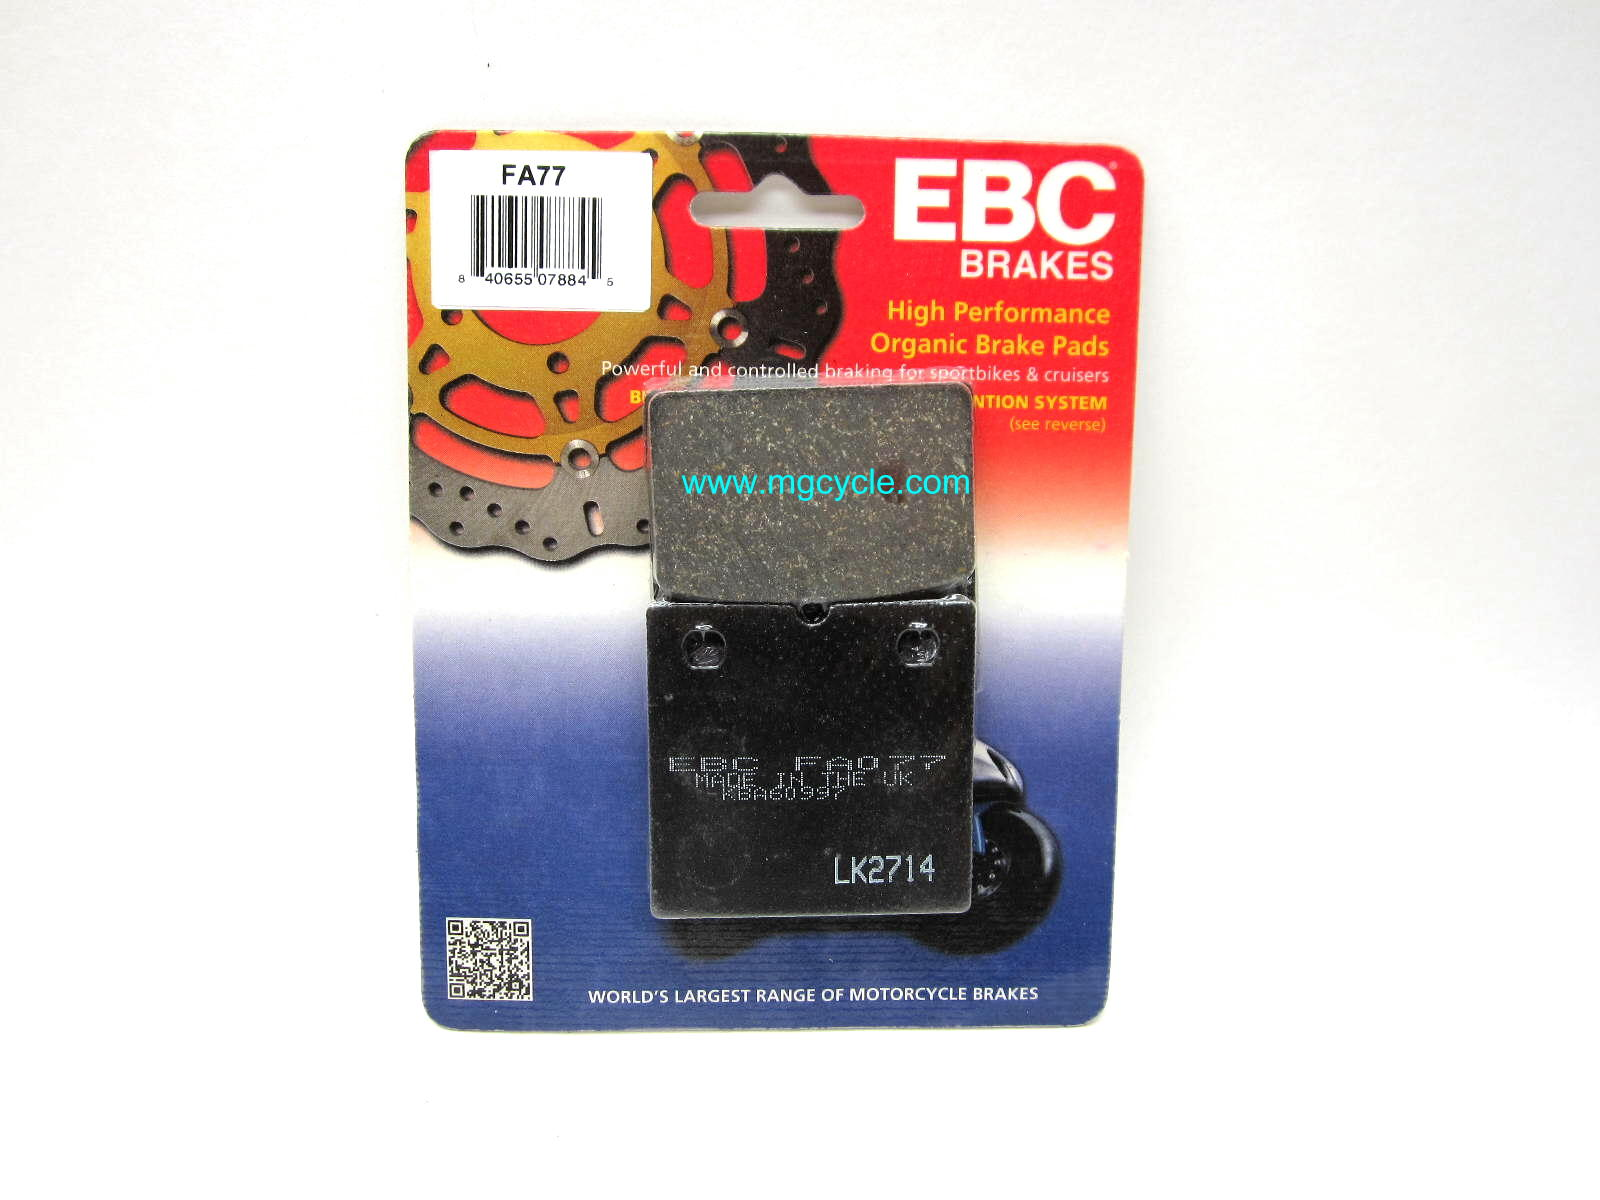 EBC kevlar organic pad for F09 caliper SP1000